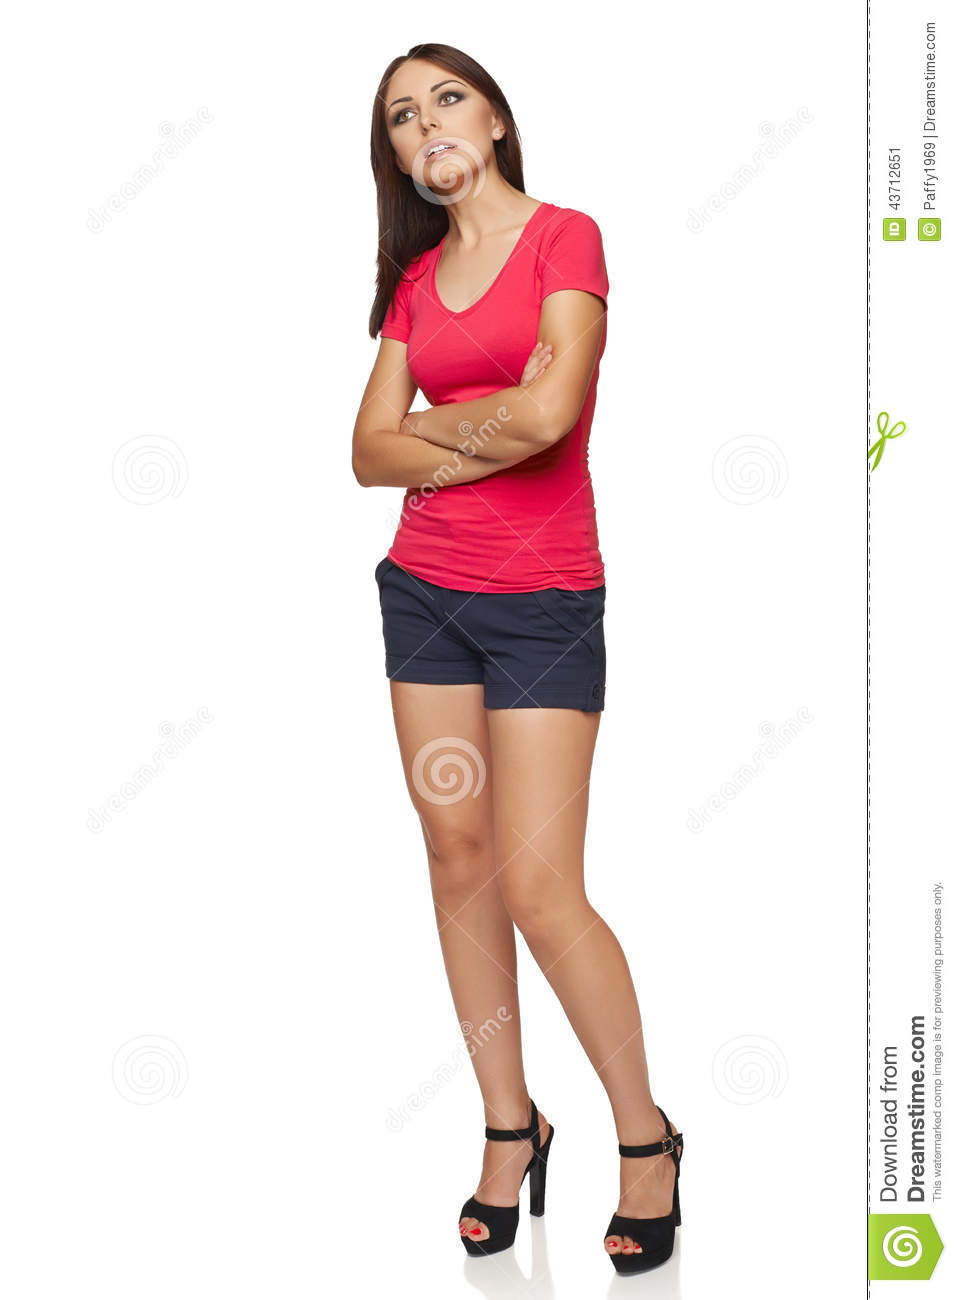 Thinking woman standing in full body isolated on white background    Woman Standing Side White Background